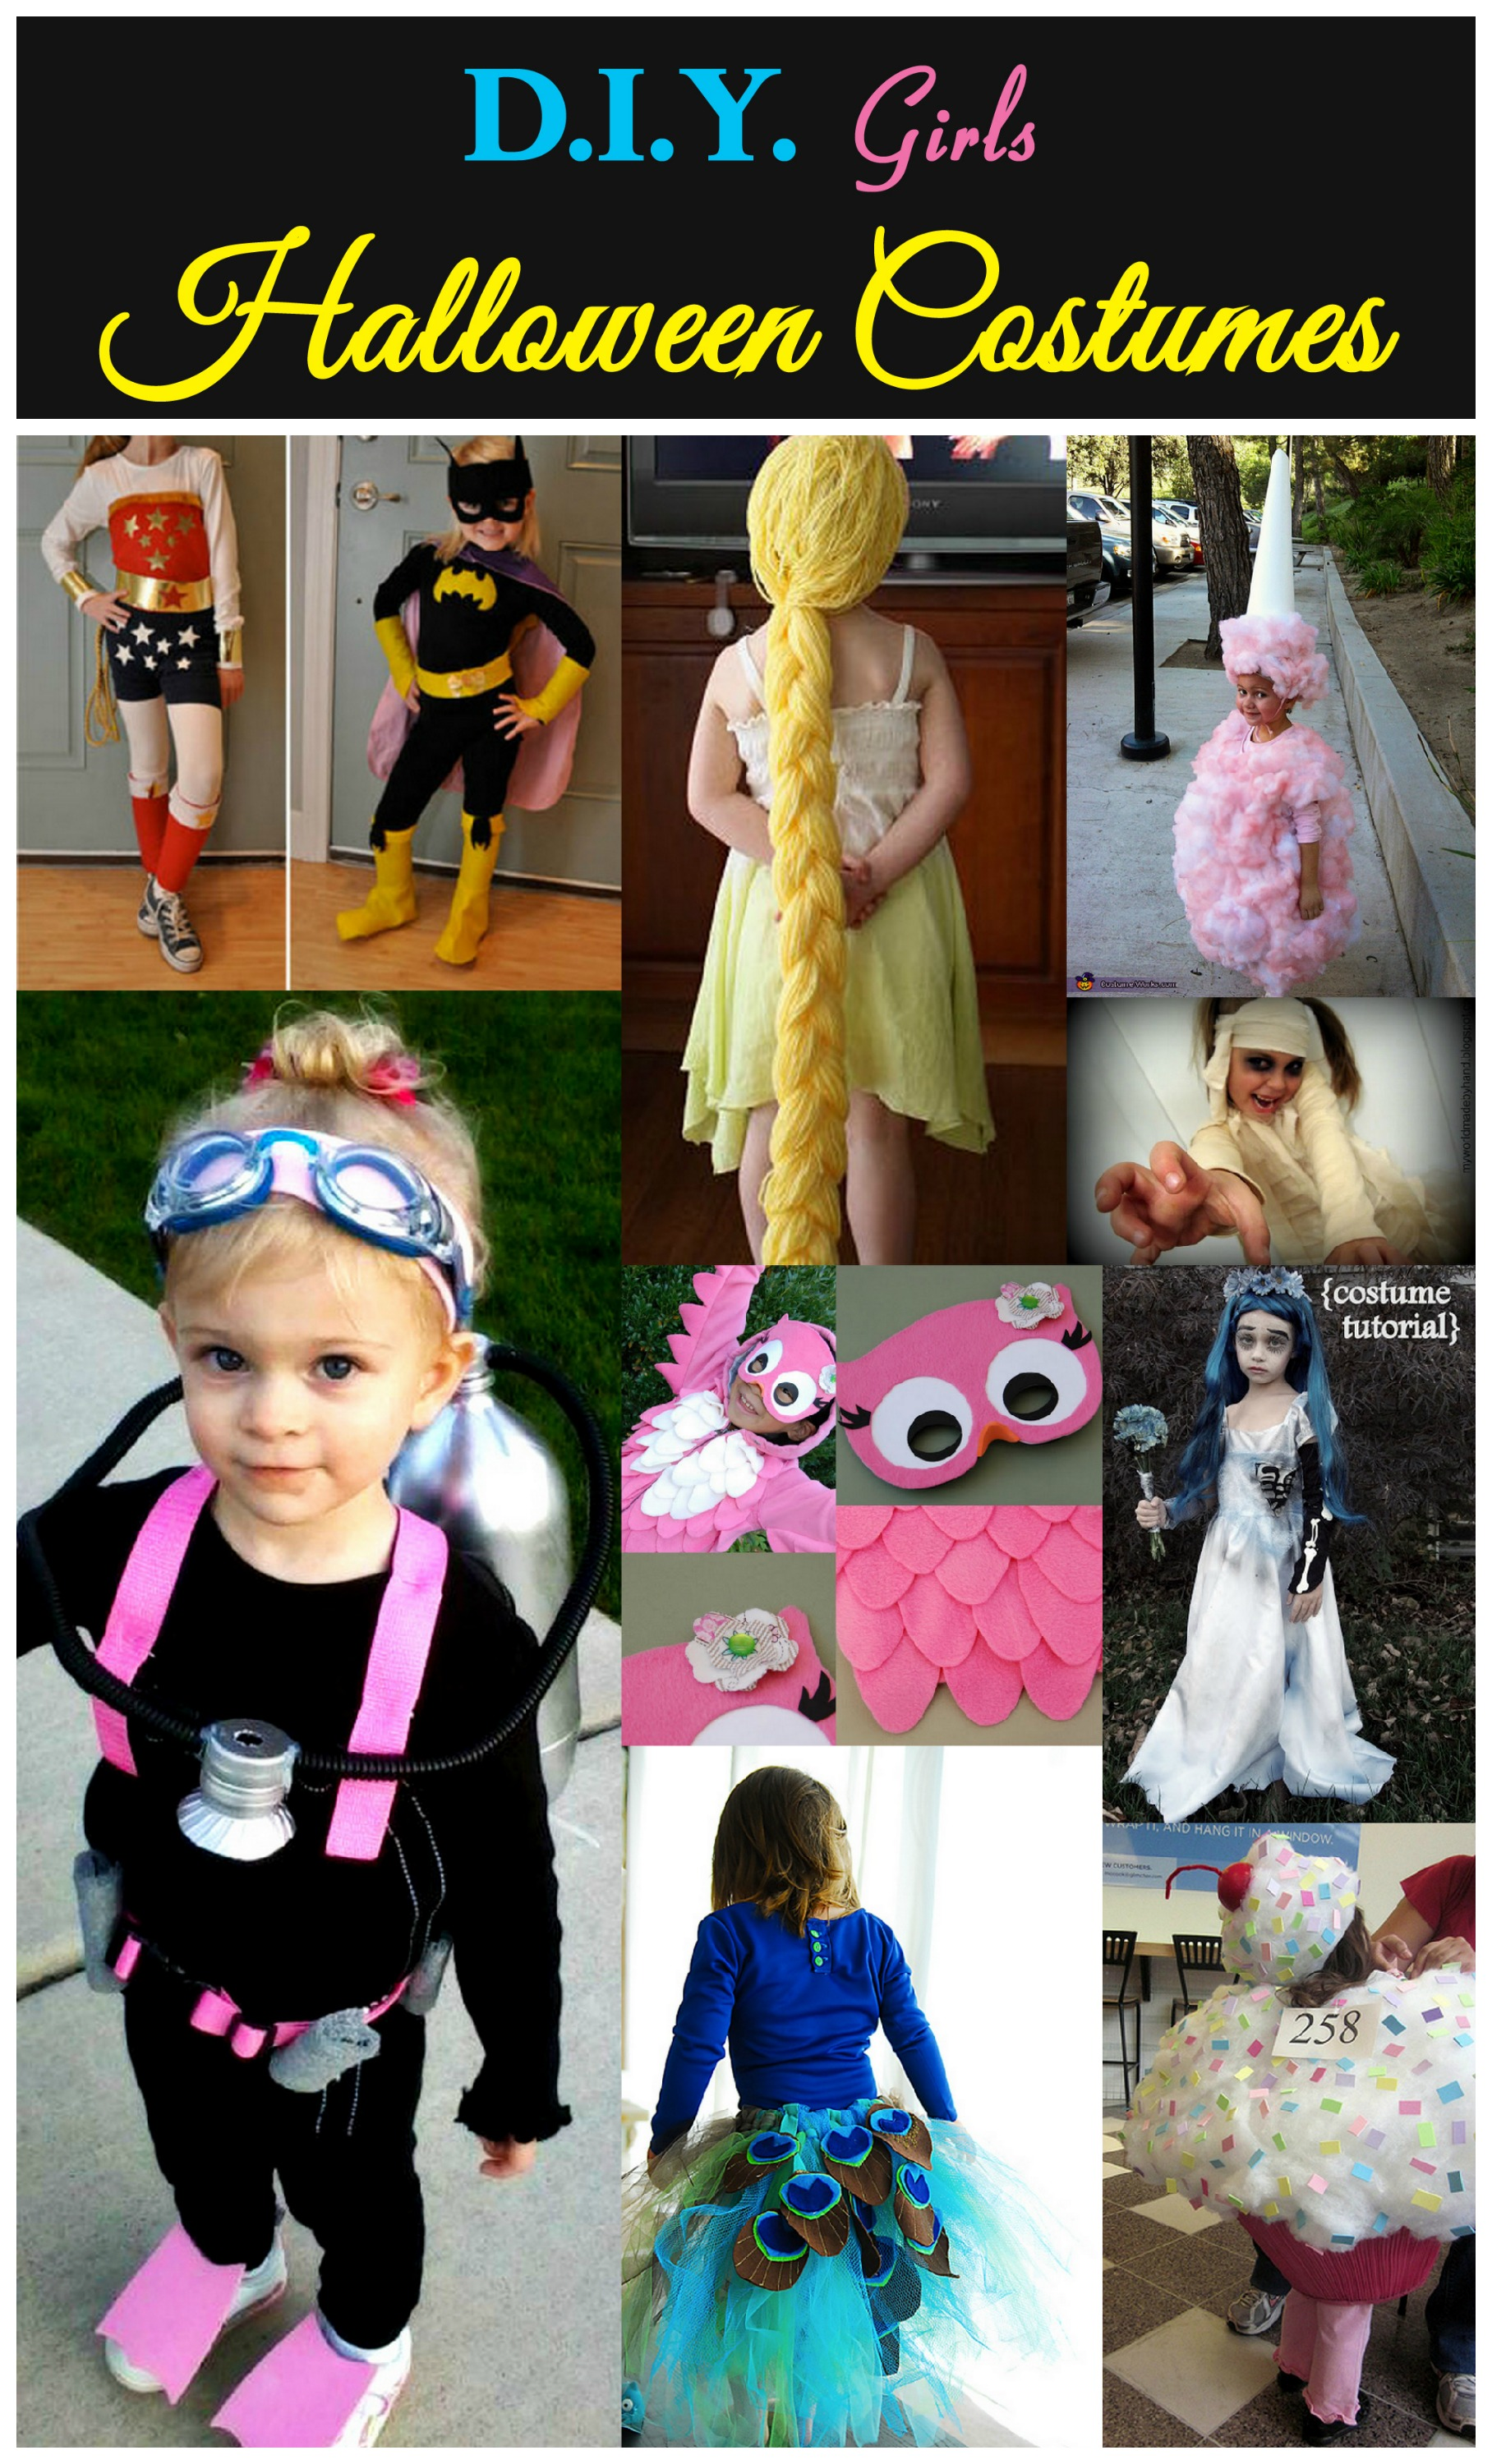 D.I.Y Girls Halloween Costumes | Crafty Family